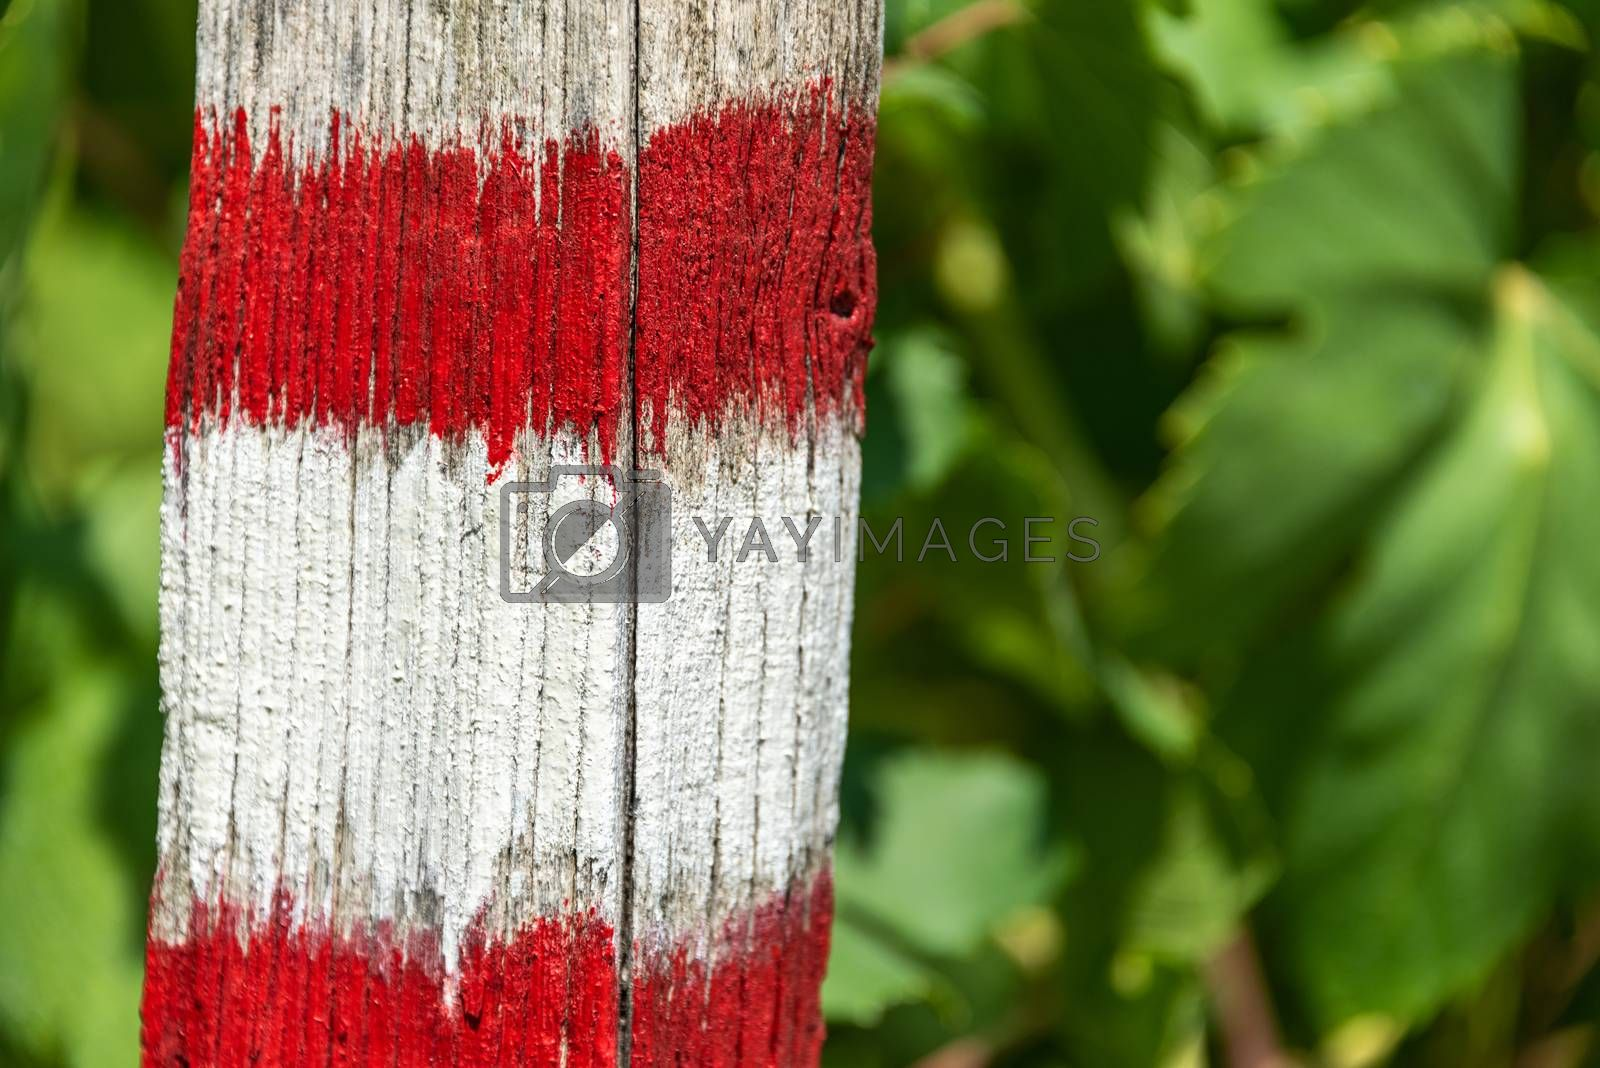 The white and red tourist trail sign painted on the tree. The green leaves as background.